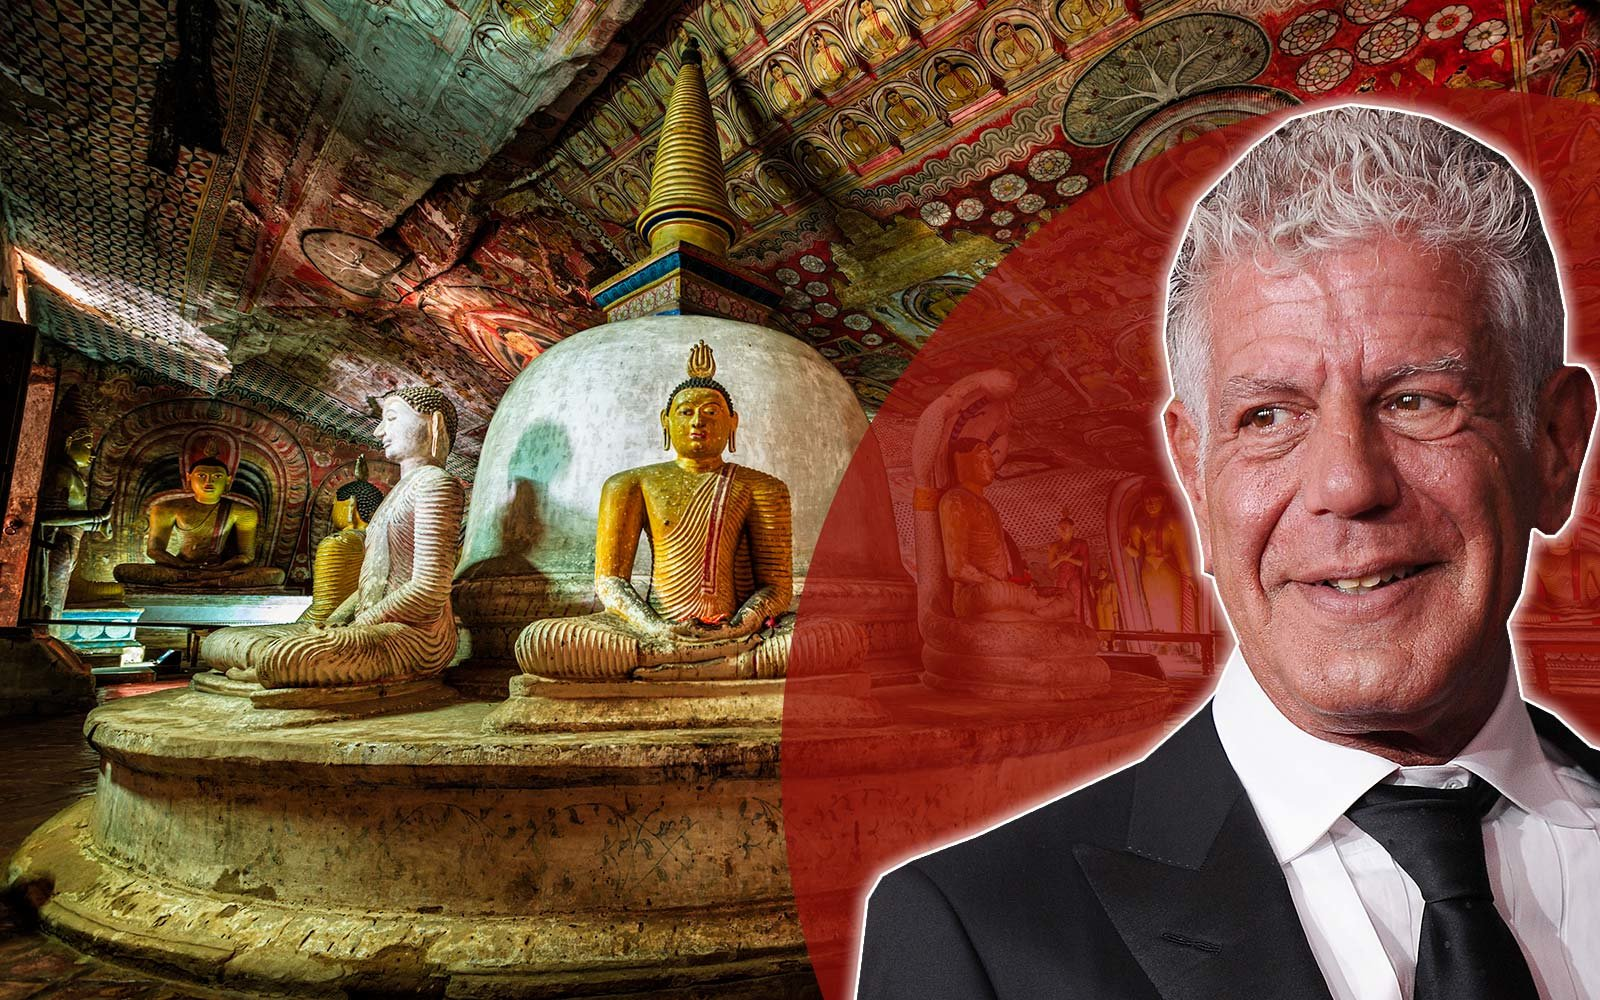 Anthony Bourdain Parts Unknown TV Travel Show Sri Lanka Season 10 adventure